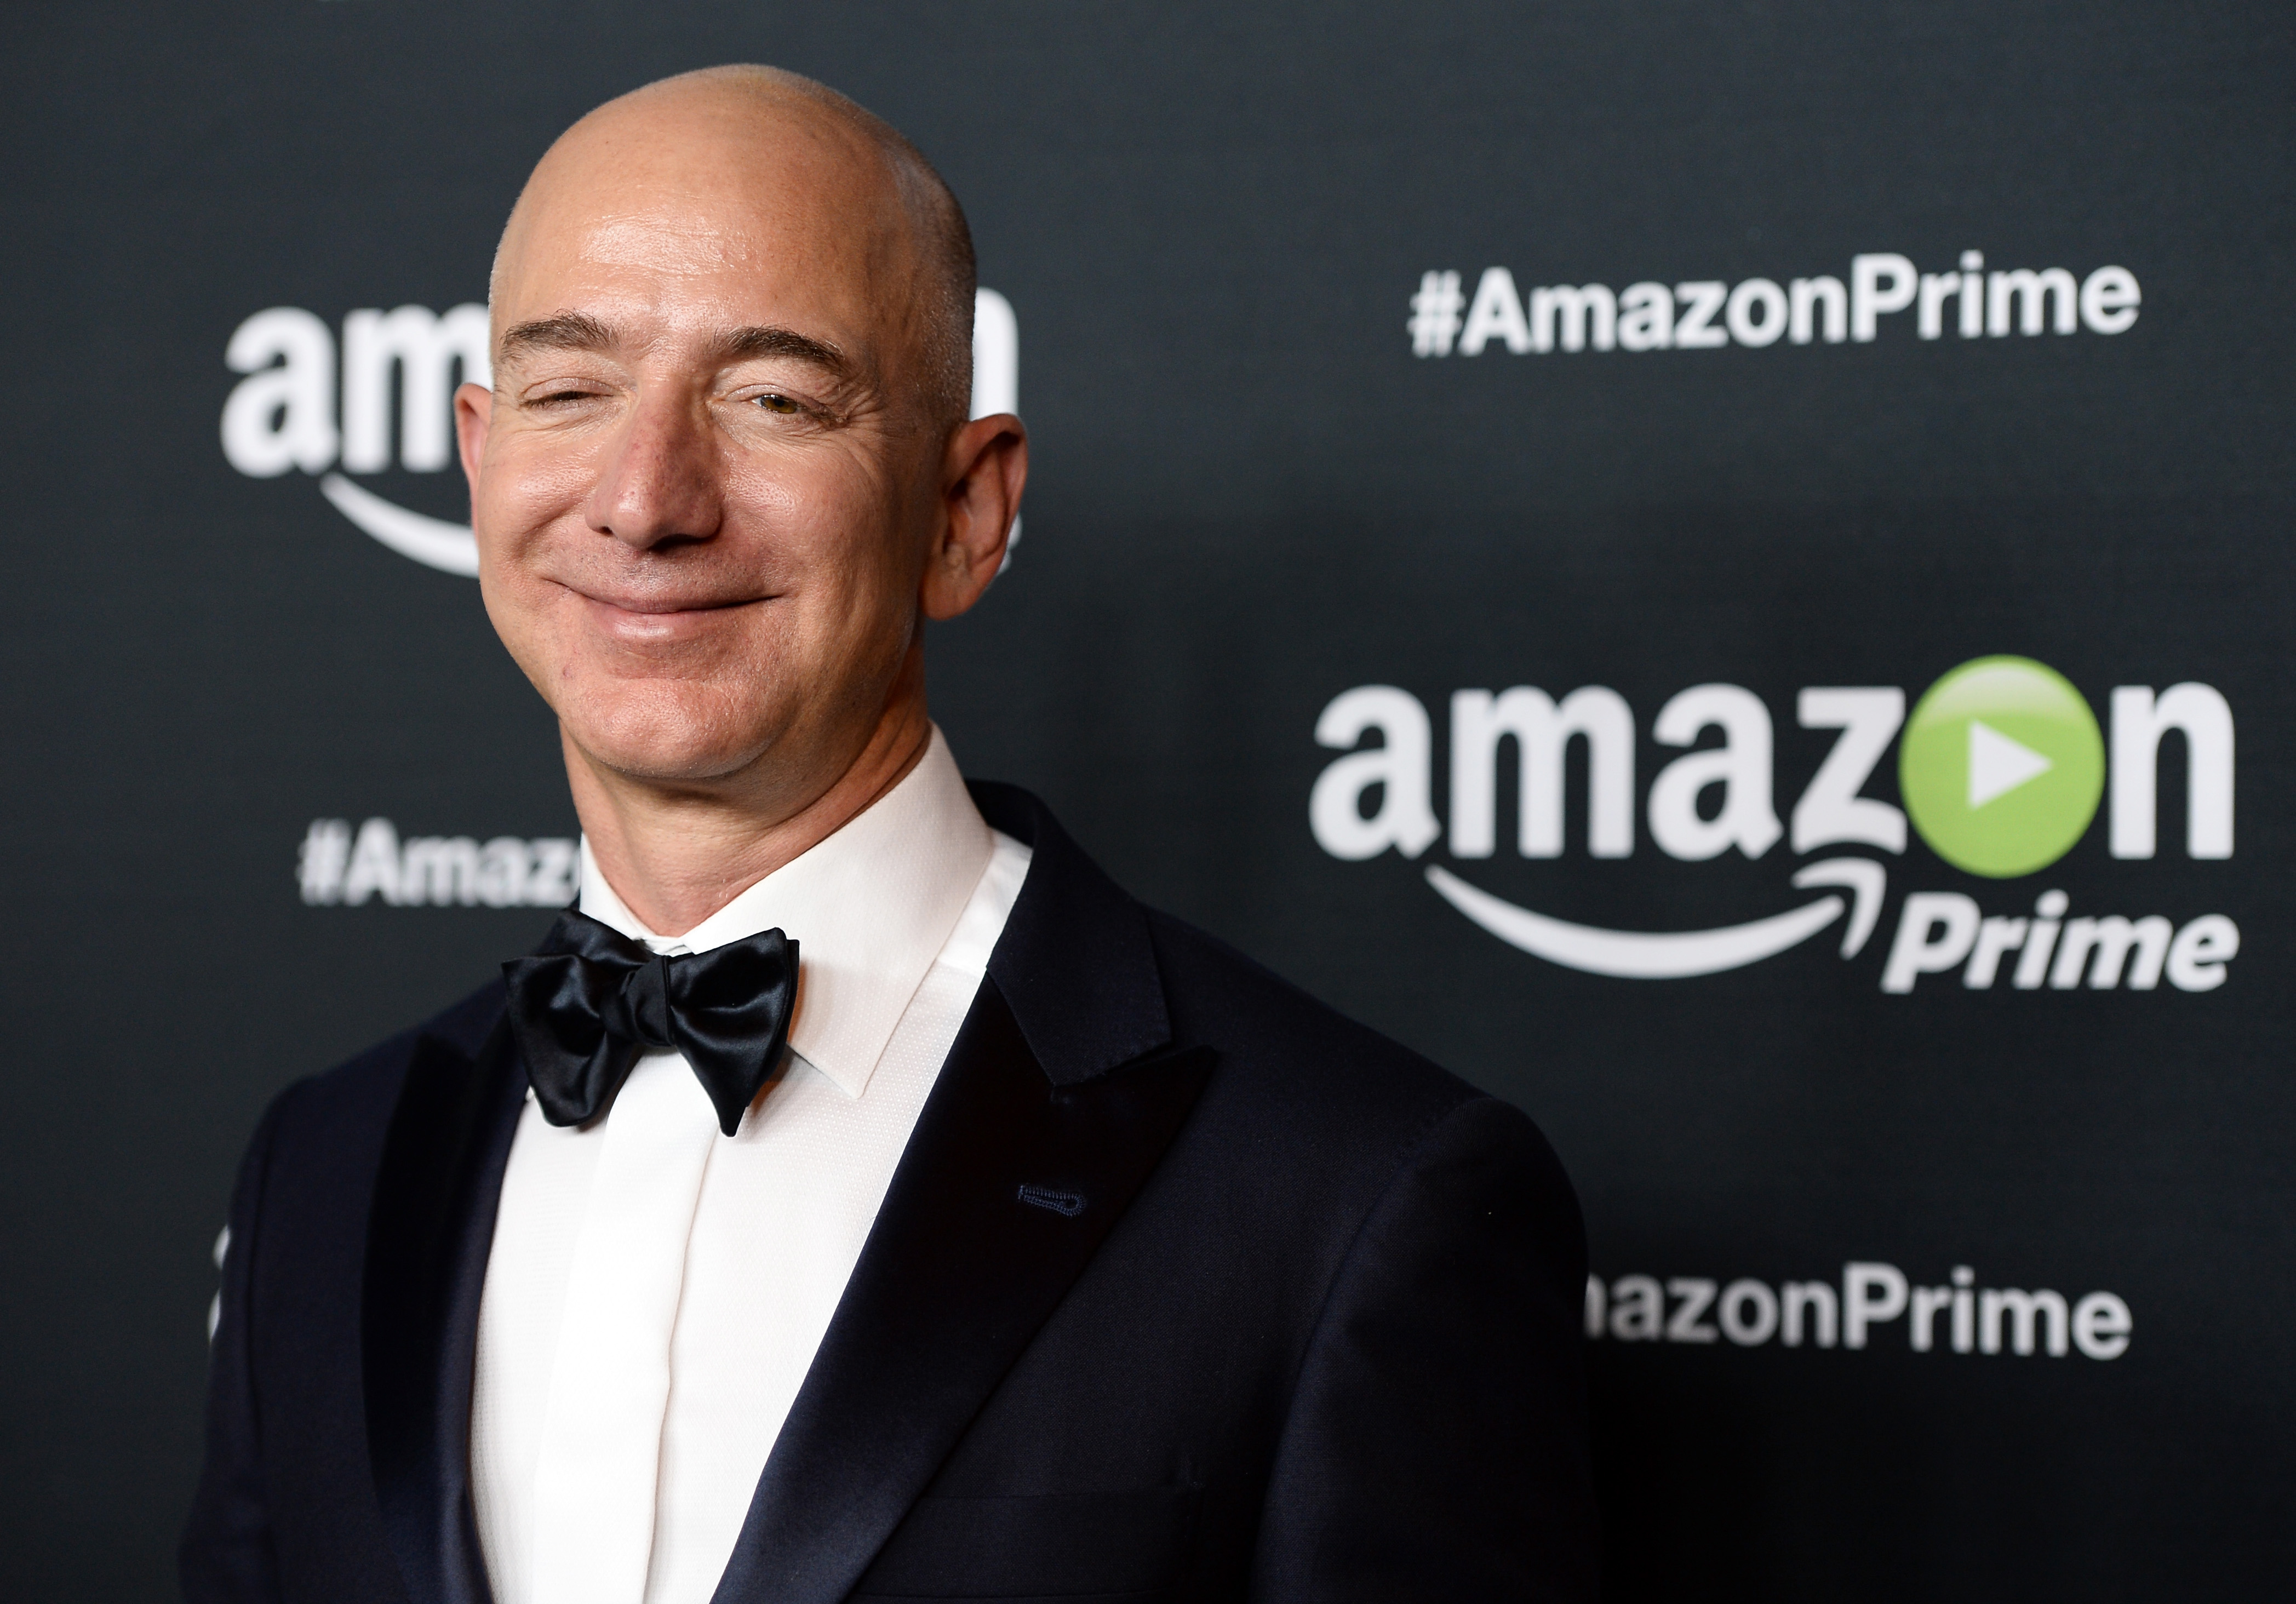 Founder and CEO of Amazon.com Jeff Bezos arrives at Amazon Video's 67th Primetime Emmy Celebration at The Standard Hotel on Sep. 20, 2015 in Los Angeles, California.